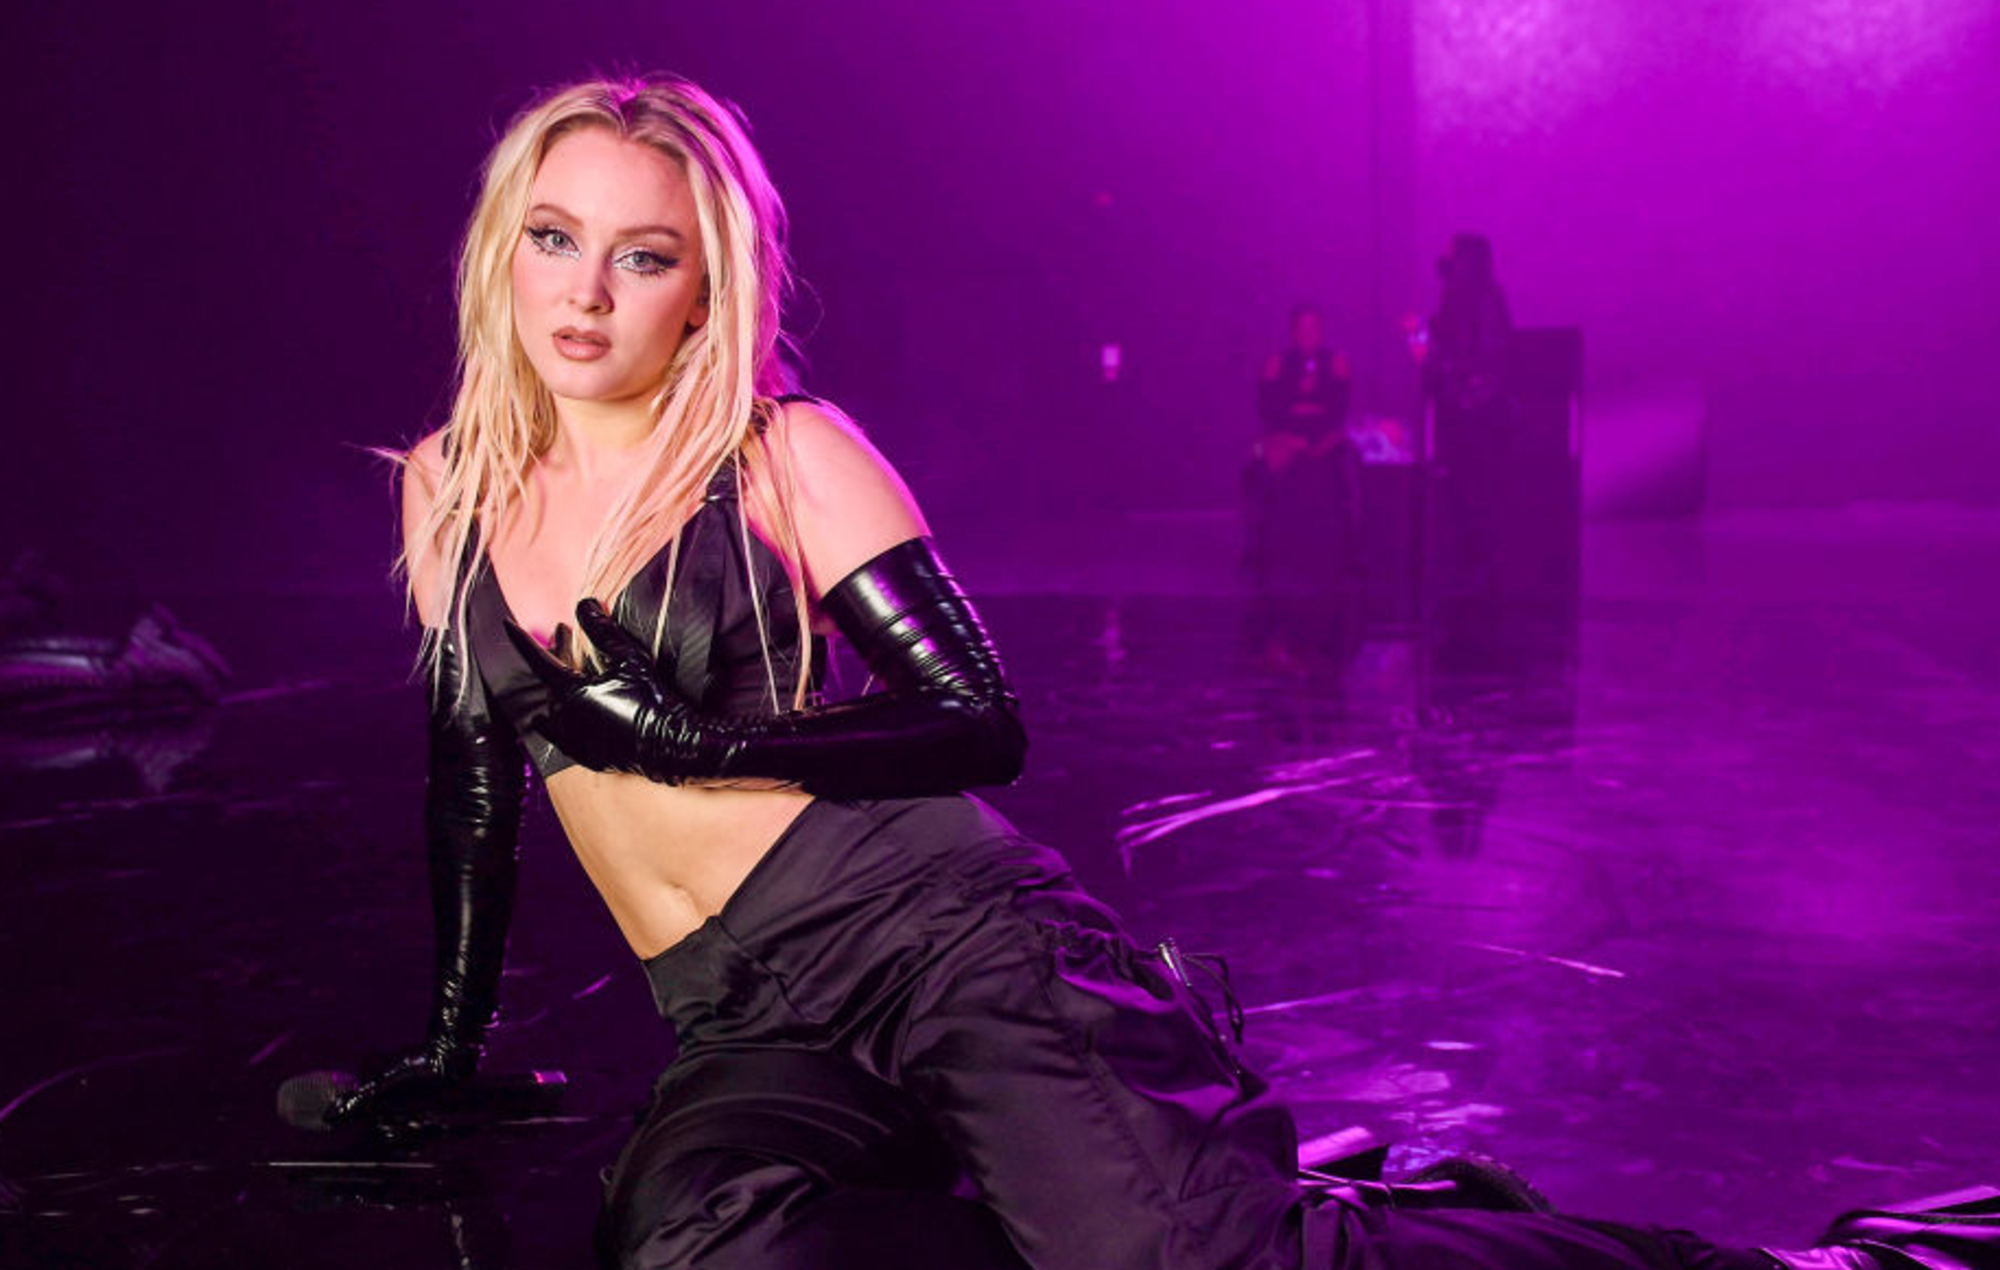 Zara Larsson says she'll fire creative director following exchanges with Azealia Banks